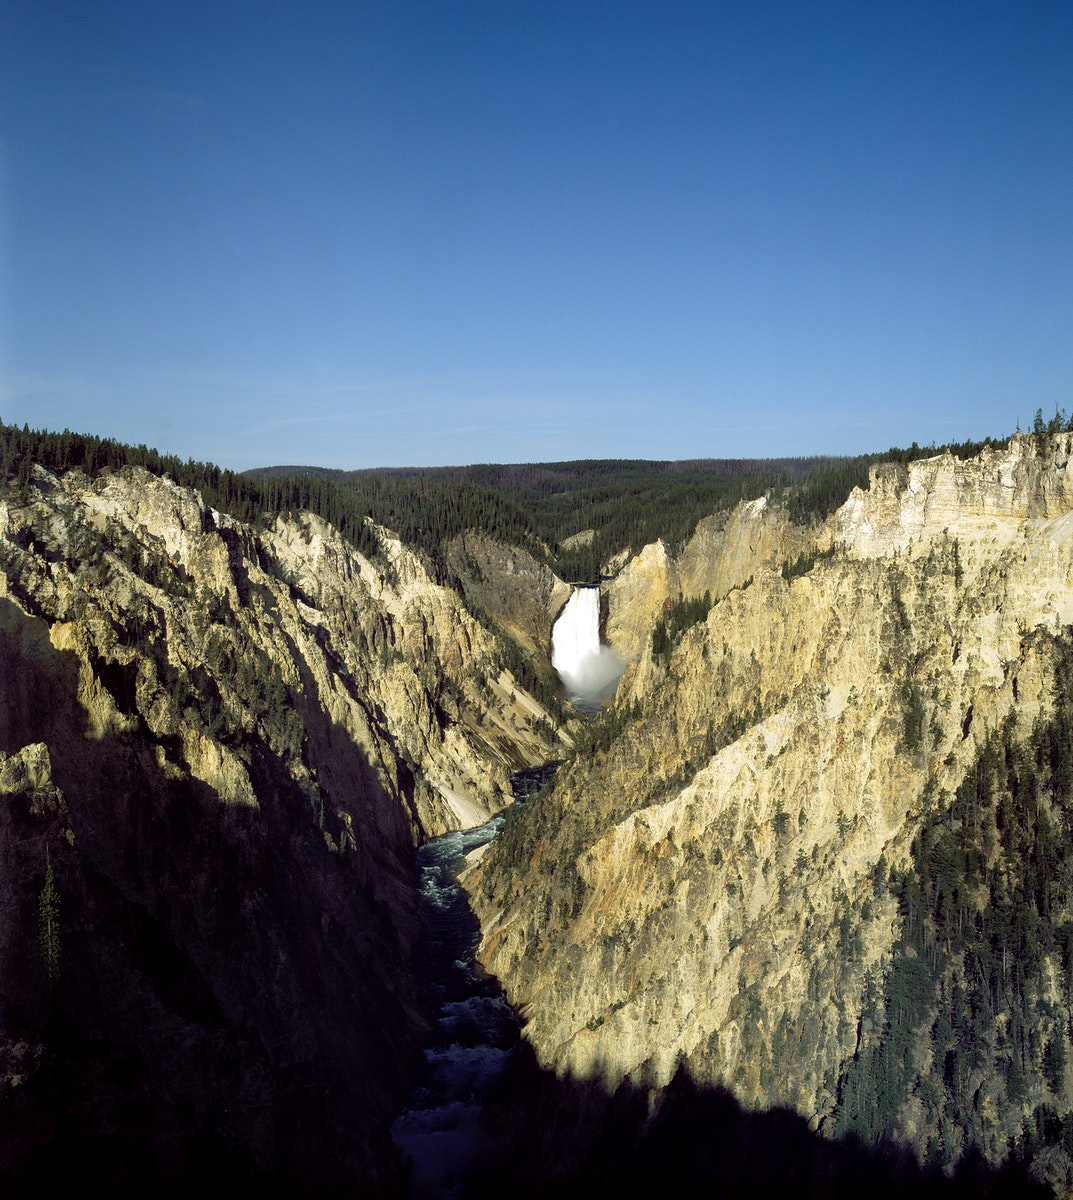 Water Fall at Yellowstone National Park. Original image from Carol M. Highsmith's America, Library of Congress…